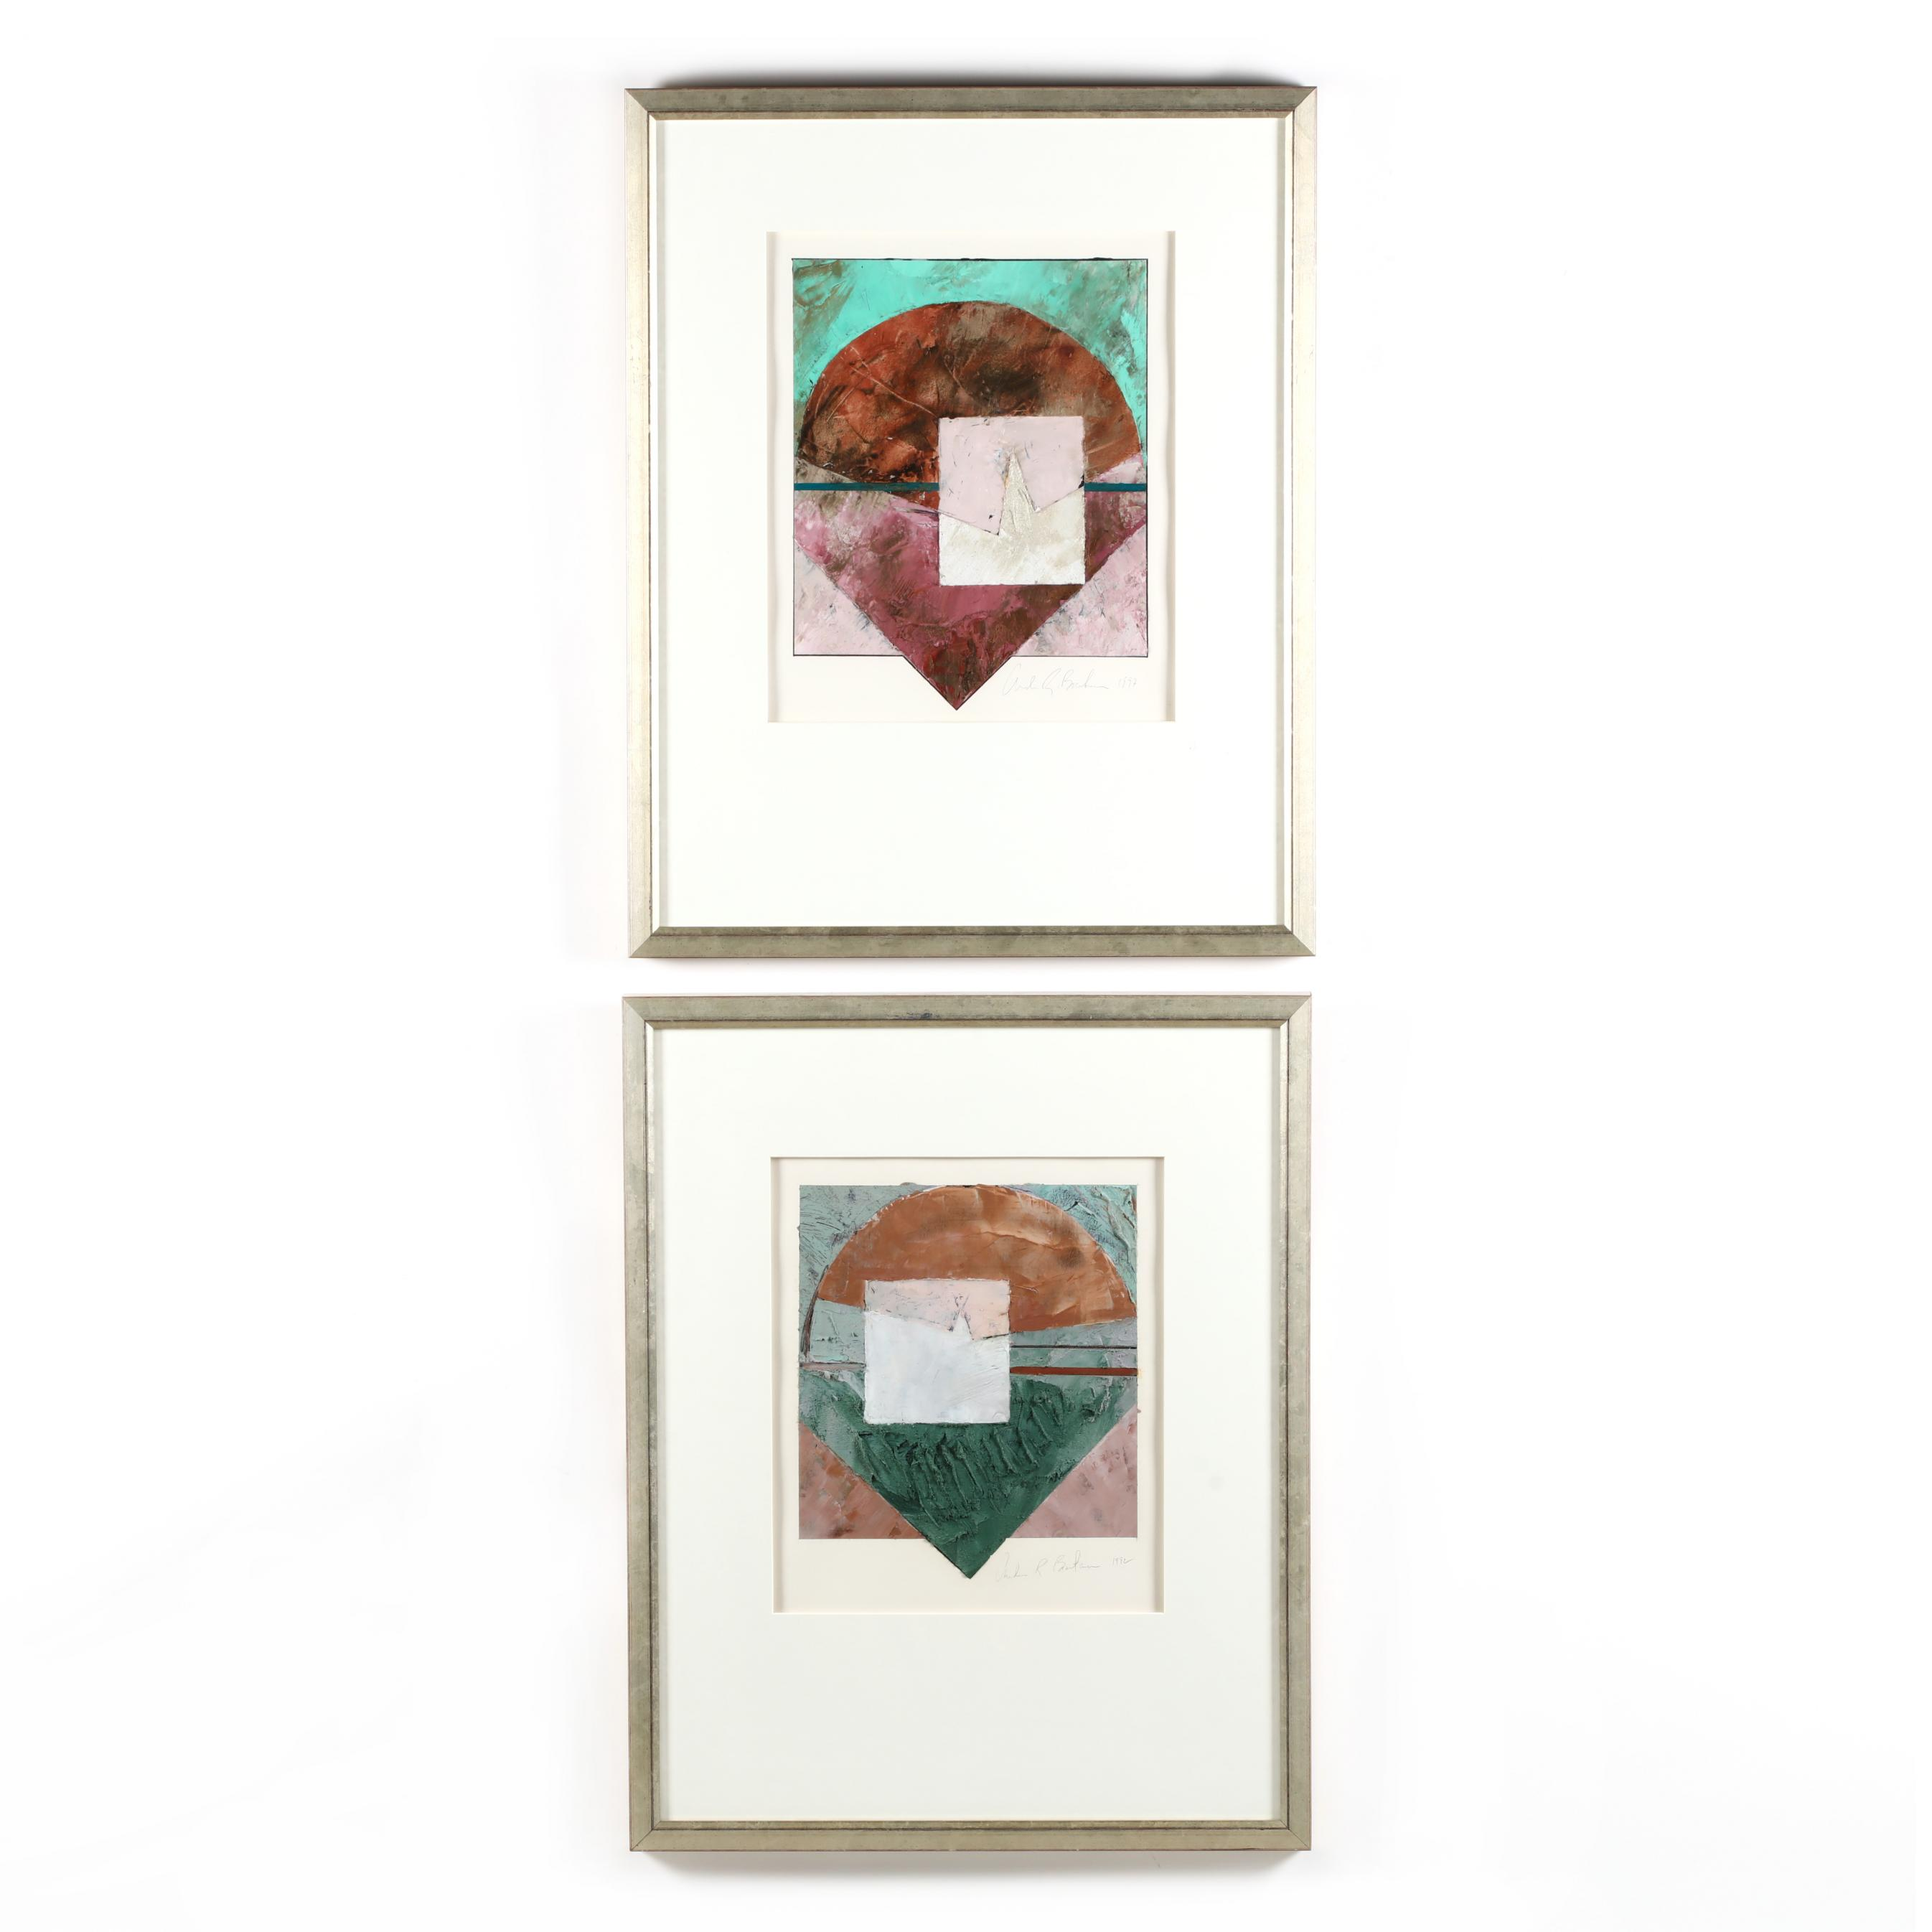 andrew-braitman-nc-two-works-from-the-i-odyssey-series-i